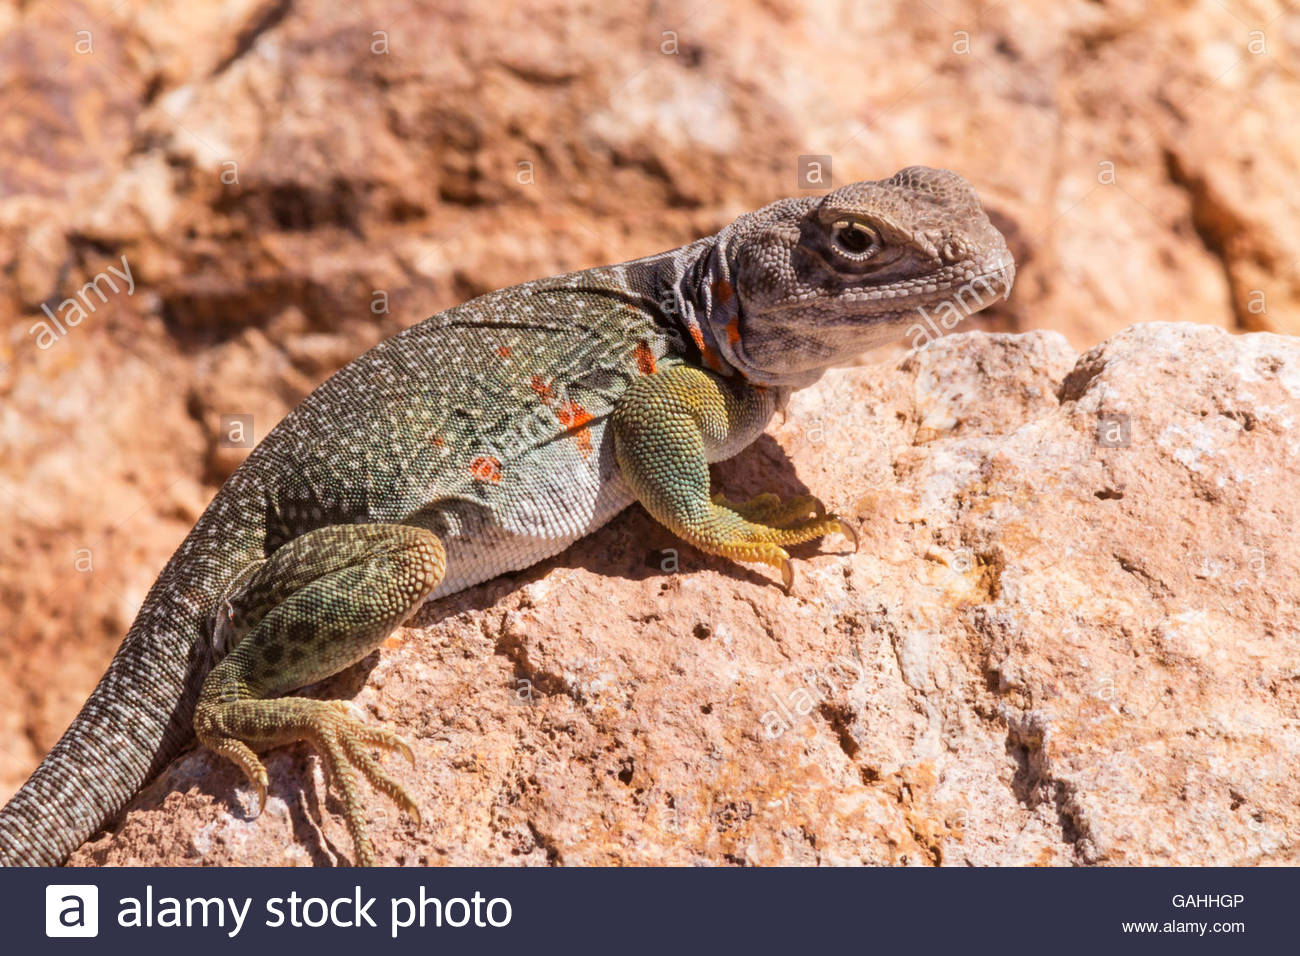 581 best Reptiles images on Pinterest